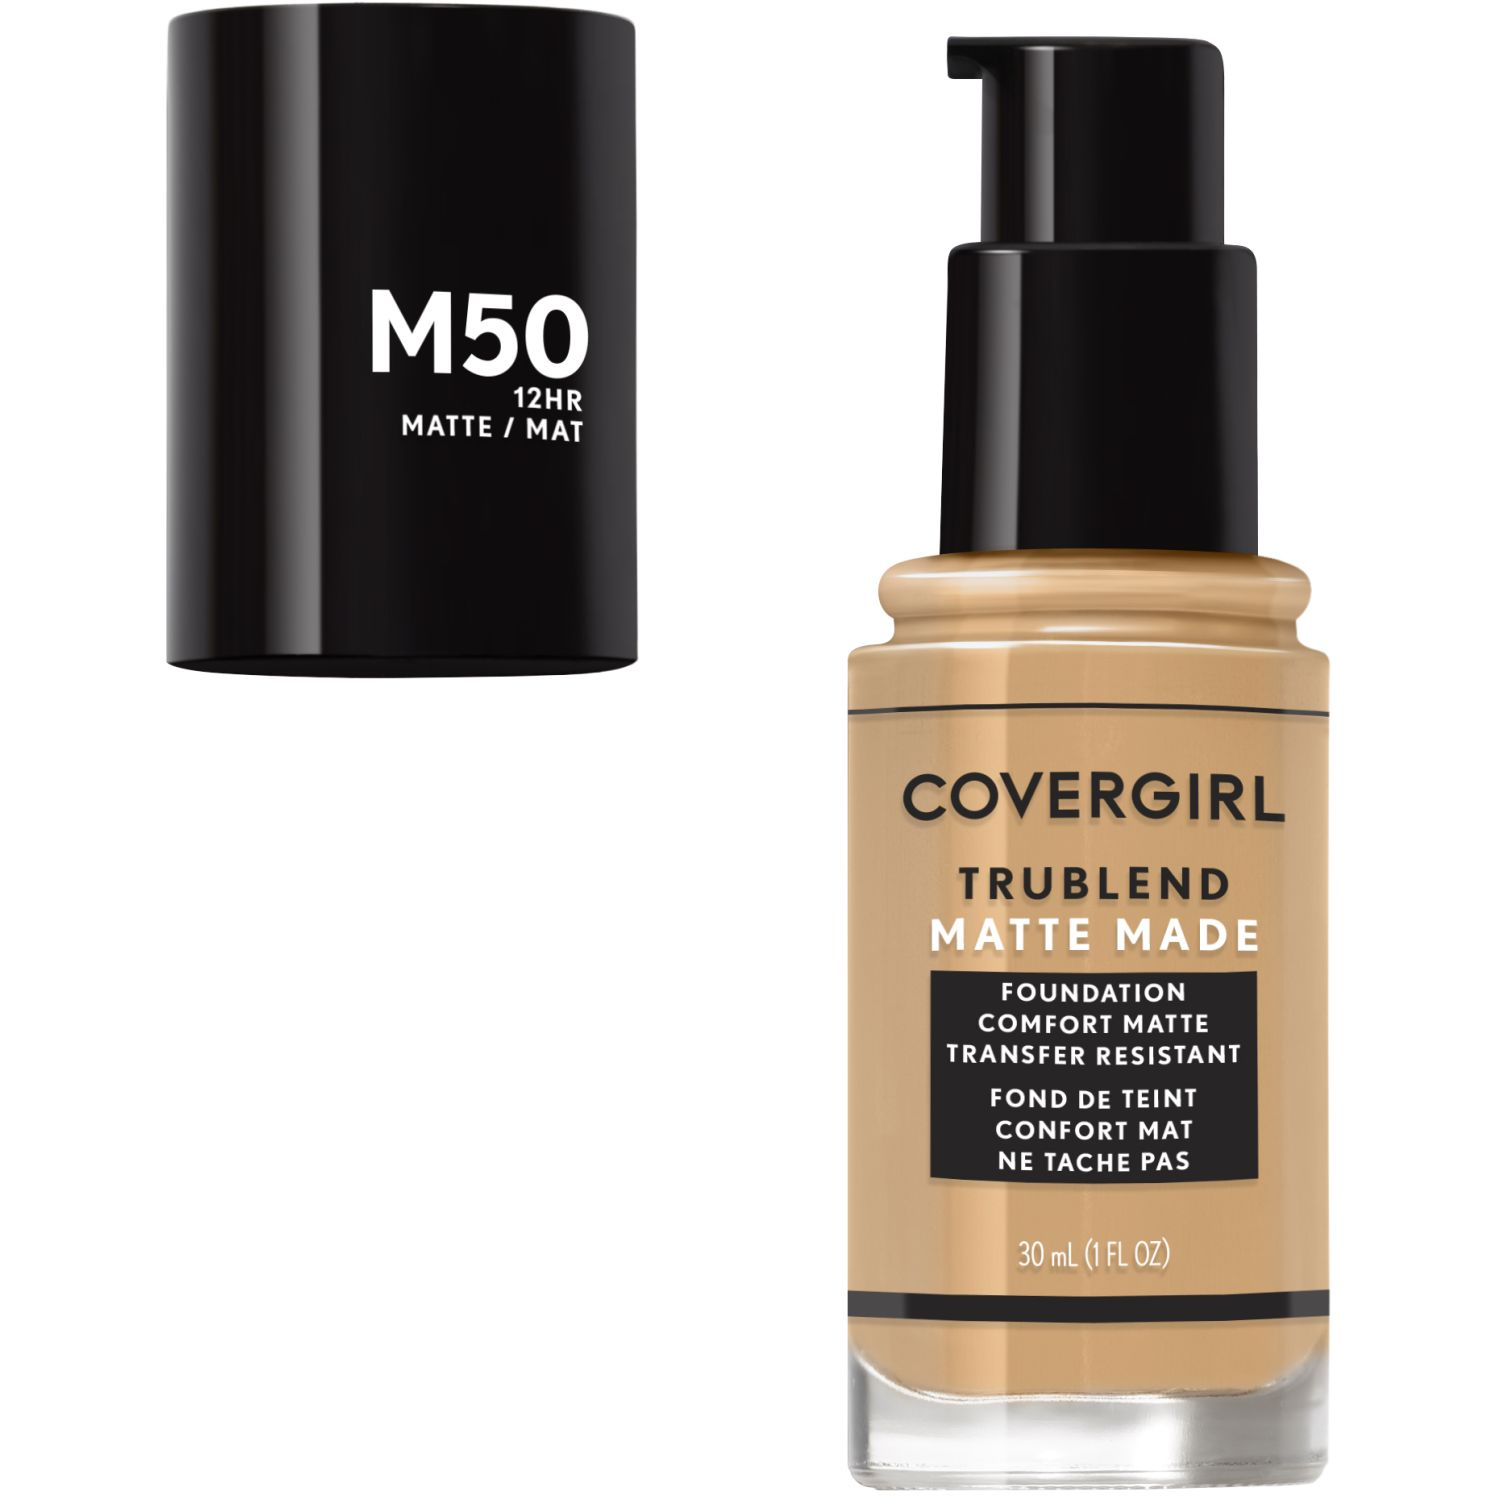 Covergirl Base TruBlend Matte Made Liquid Makeup SOFT TAN M50 Fundación